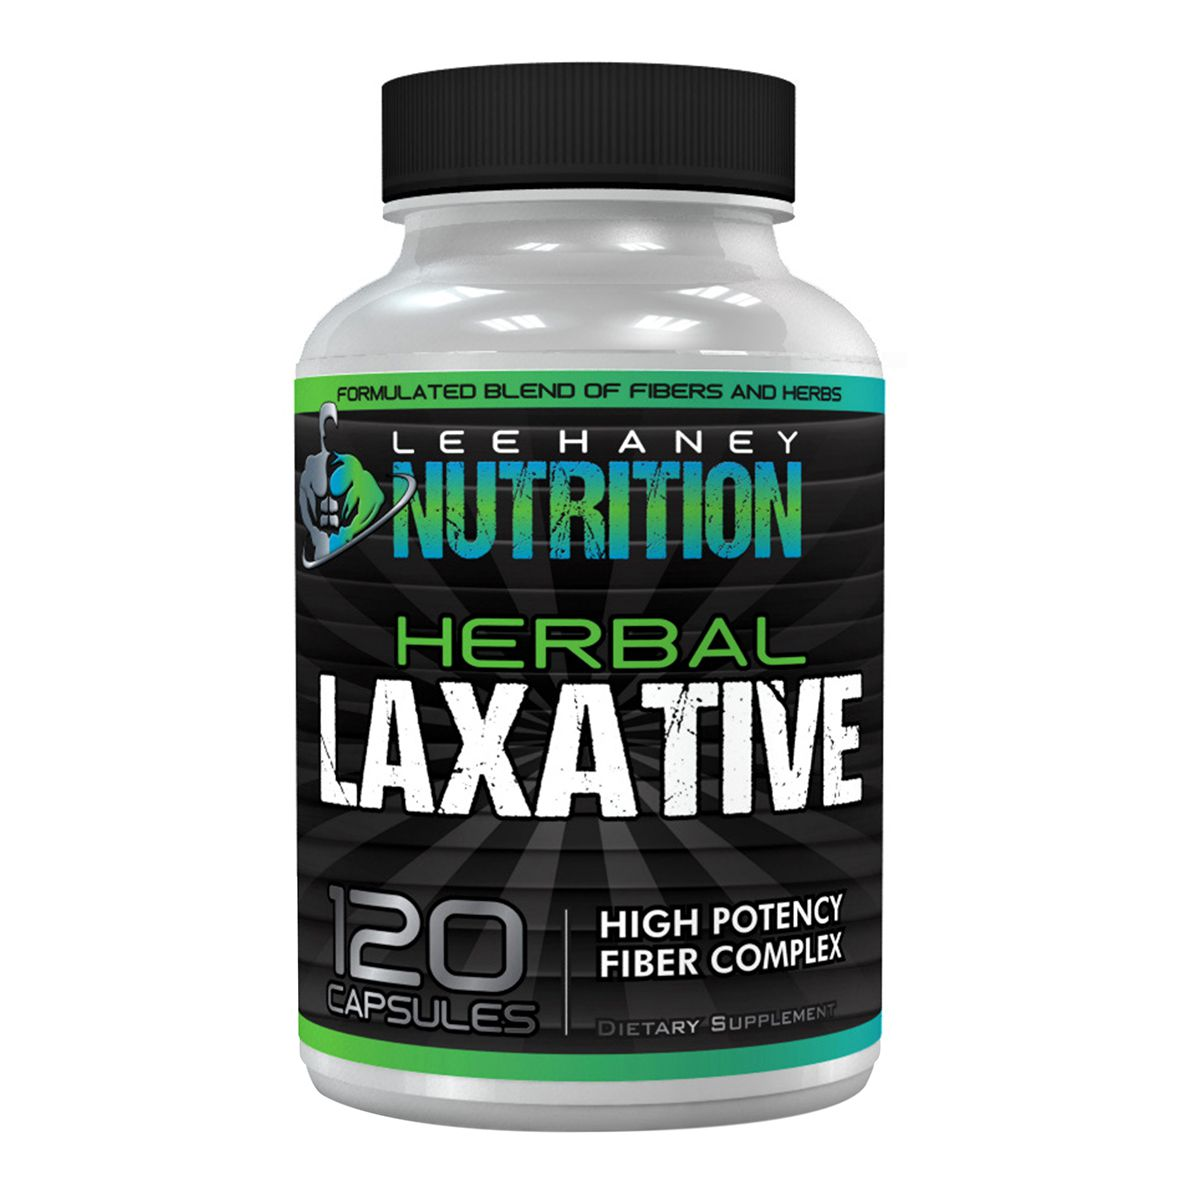 Lee Haney Nutrition, Herbal Laxative